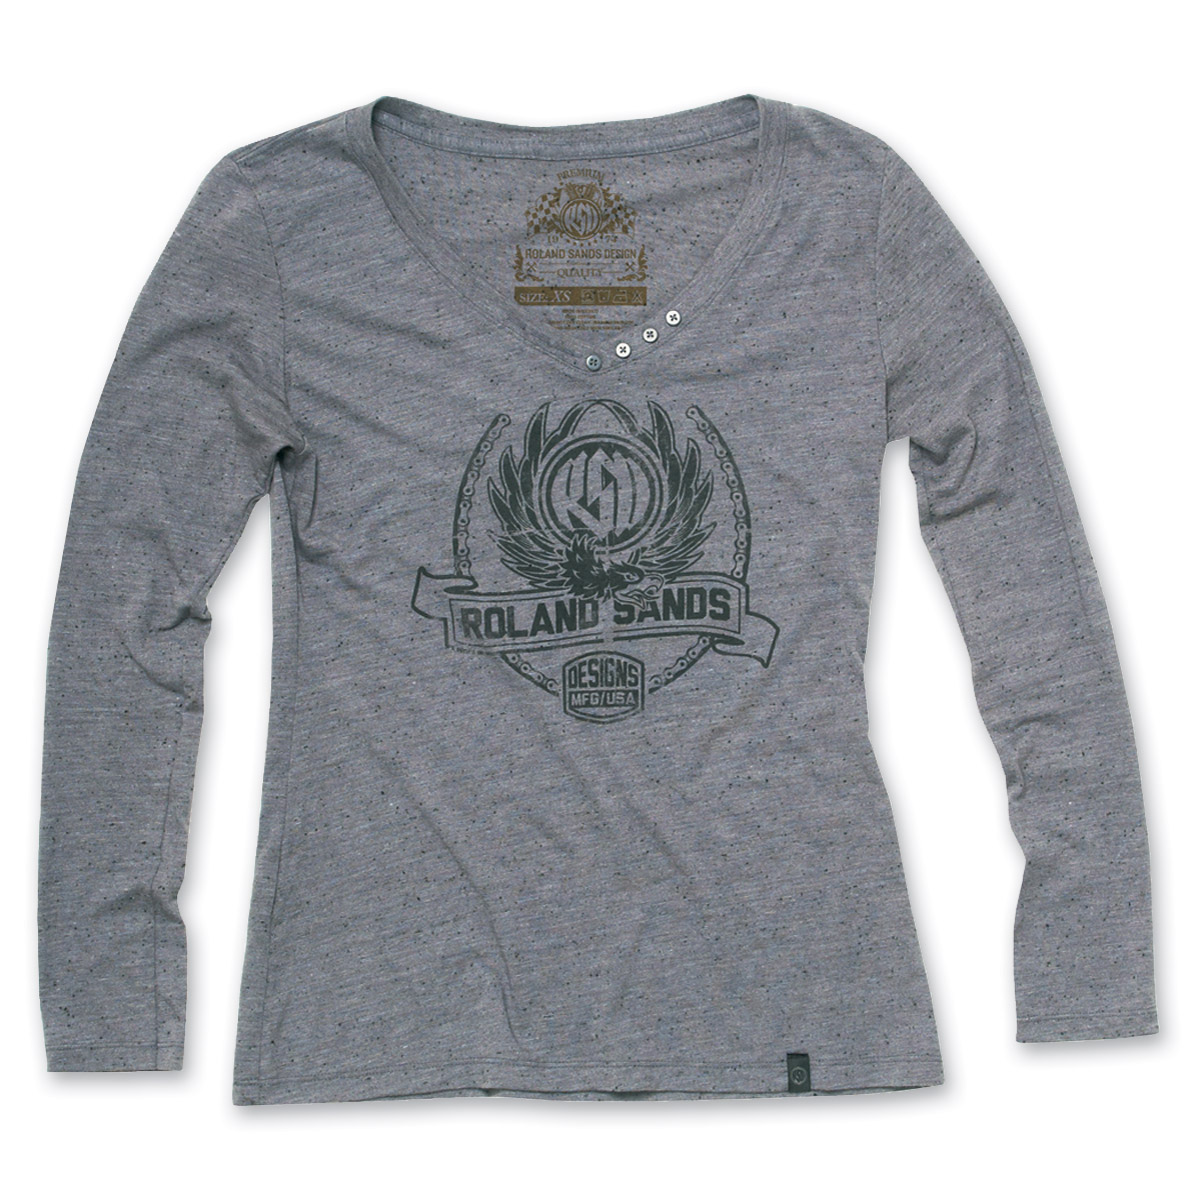 Roland Sands Design Crest Heather Gray Long-sleeved T-shirt